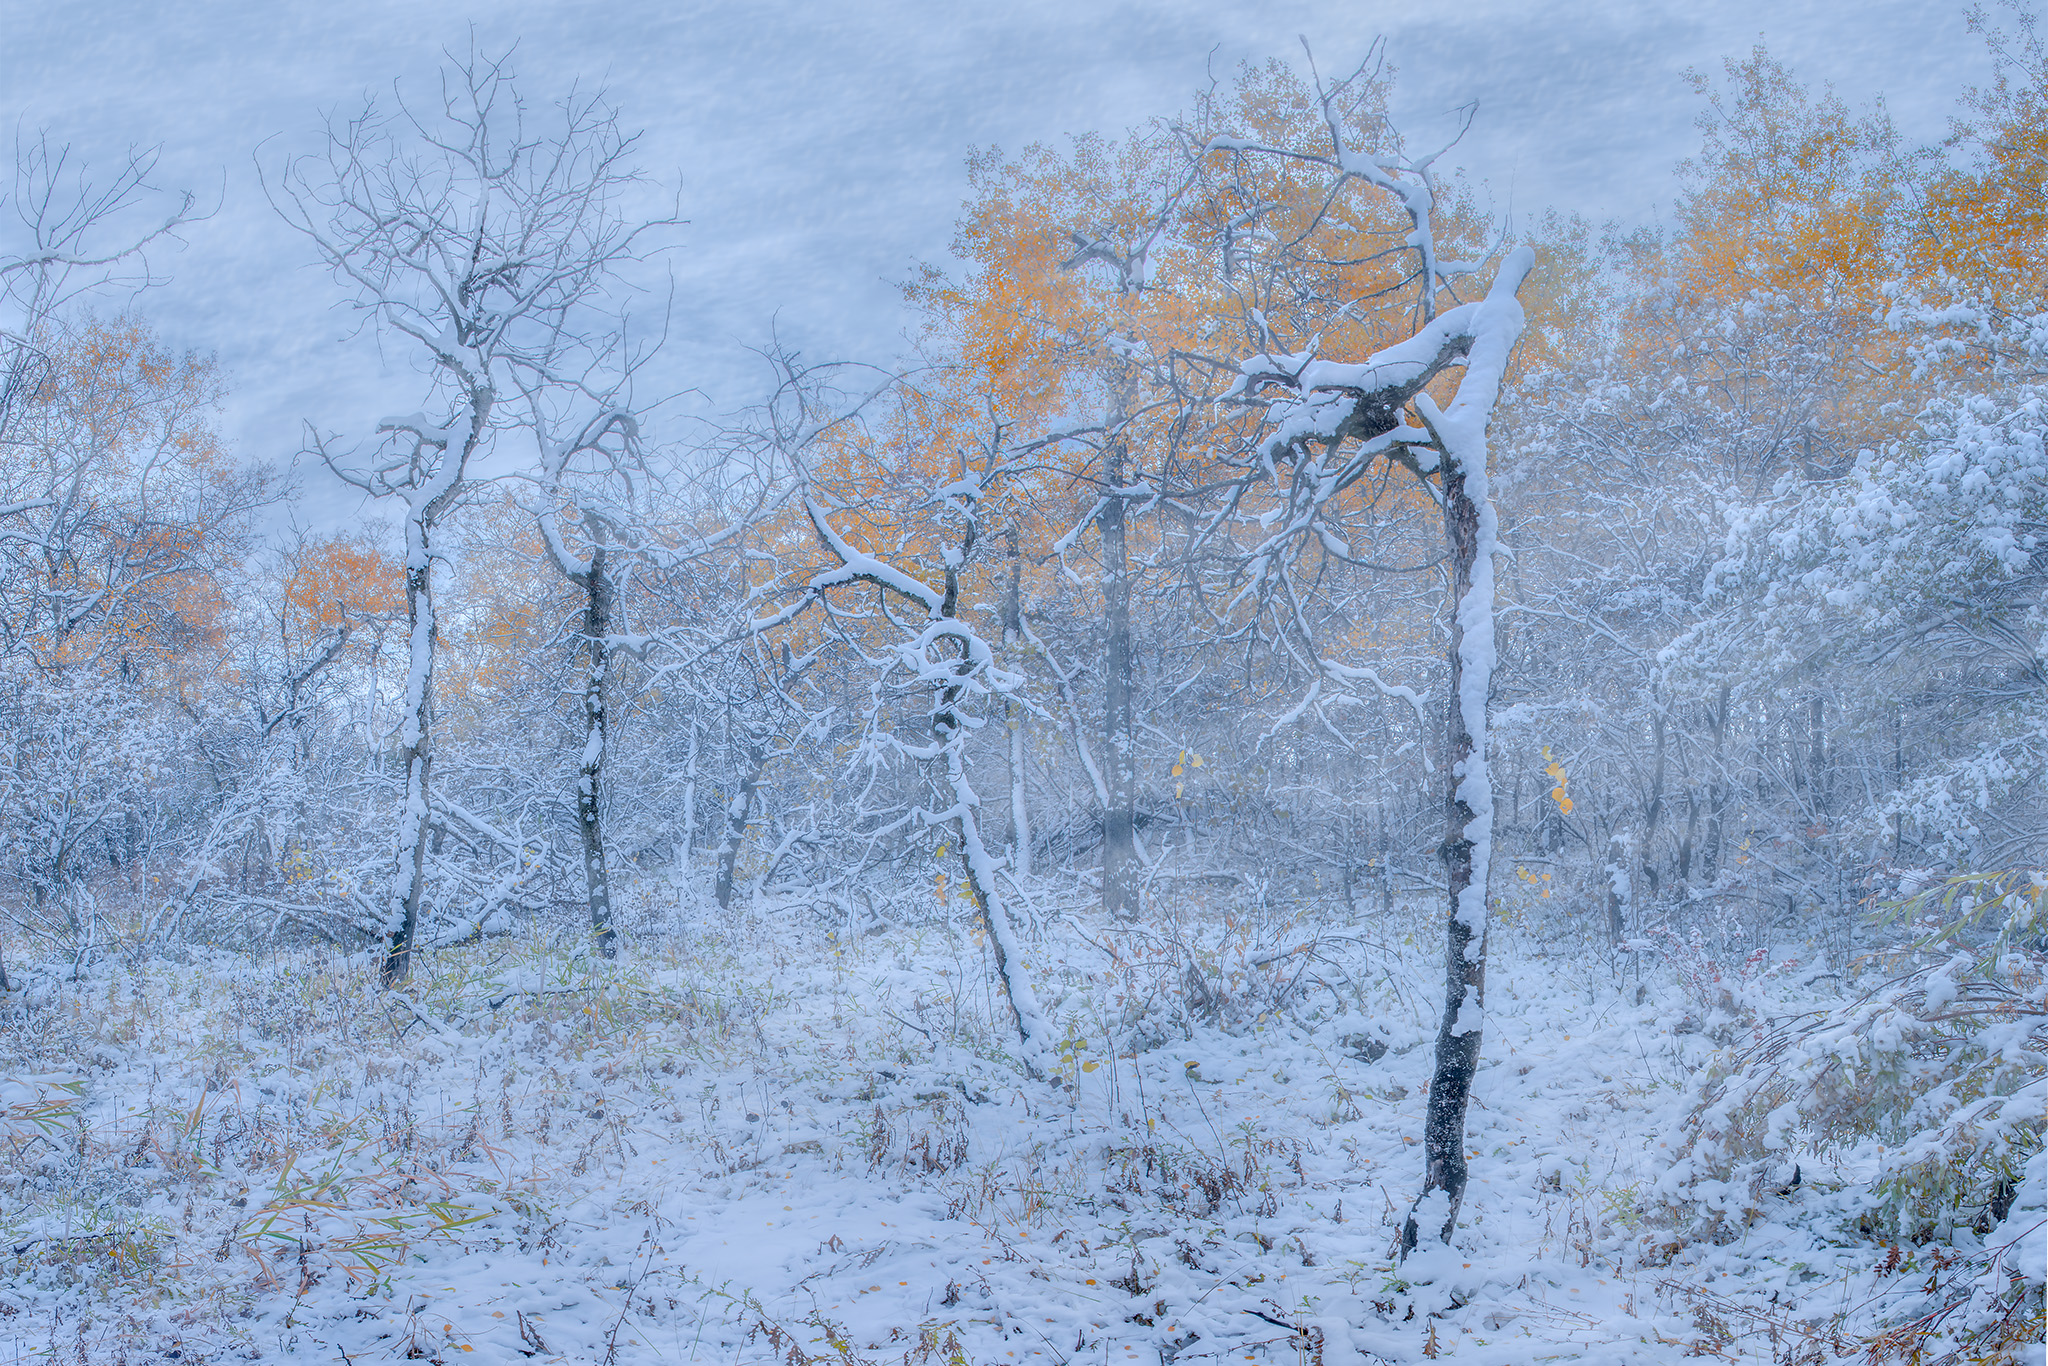 A winter storm in a Saskatchewan woodland called White Butte Trails